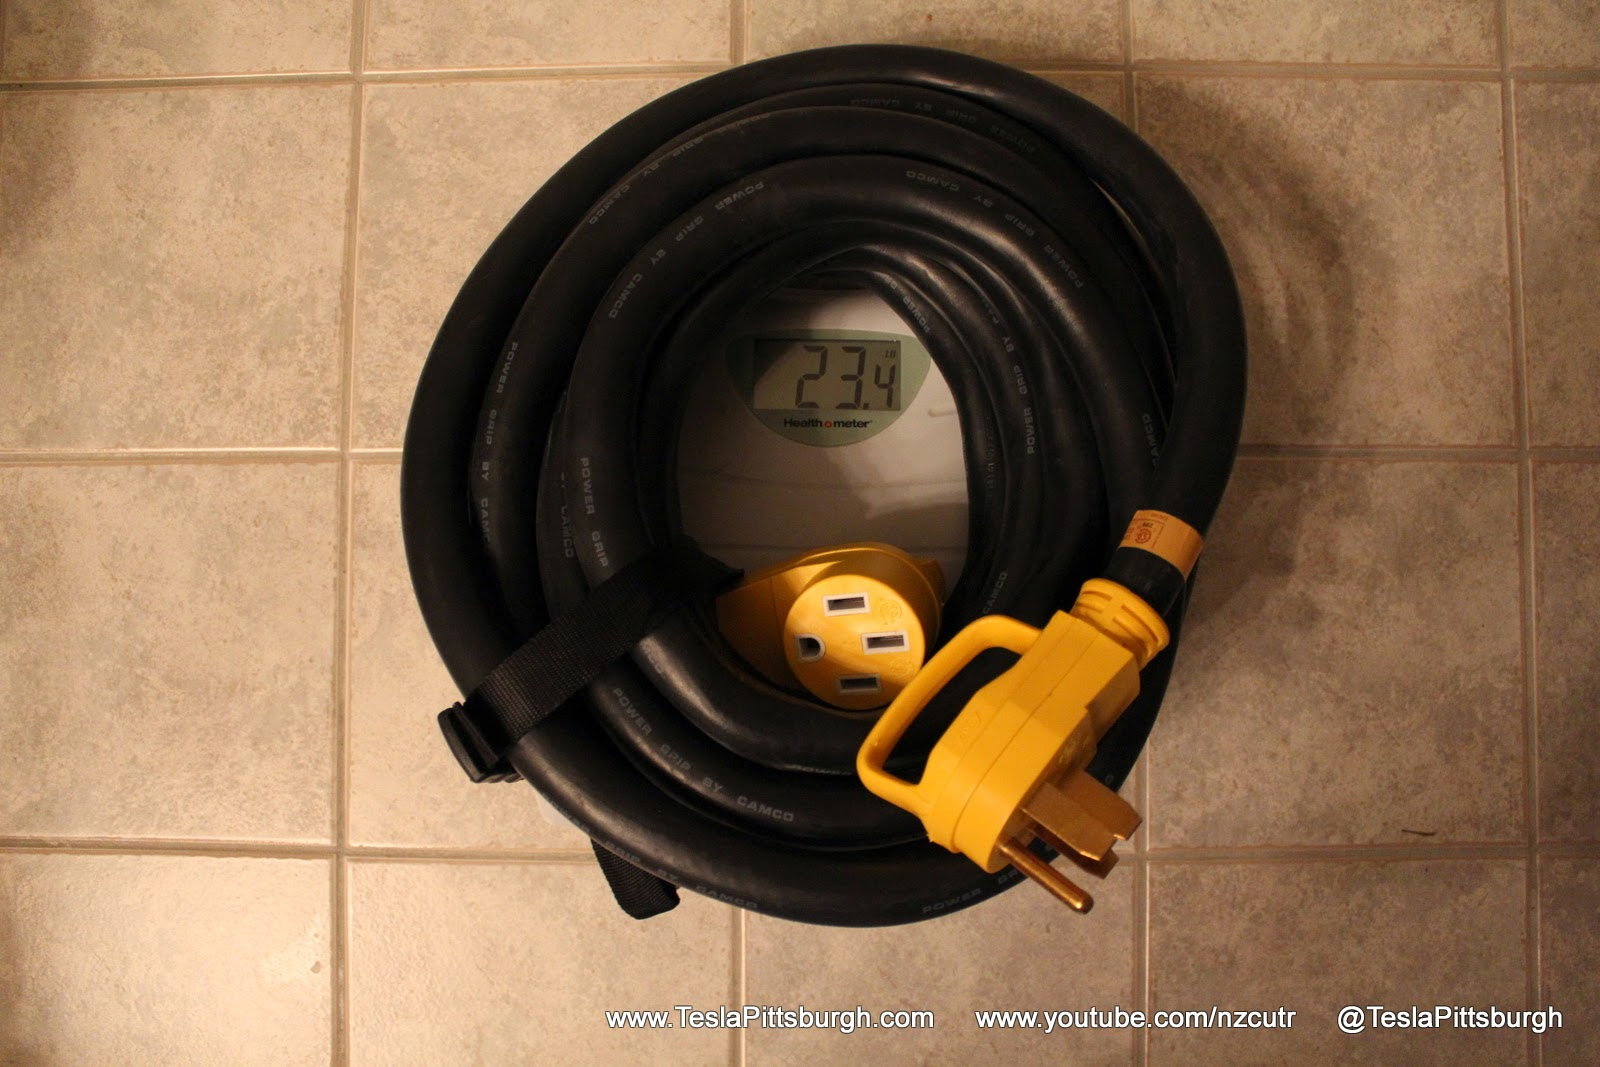 Tesla Umc Extension Cord Via Camco 50 Amp 30 Powergrip Since You Are Dealing With Wire And Depending If It Is A Short 50amp Weight